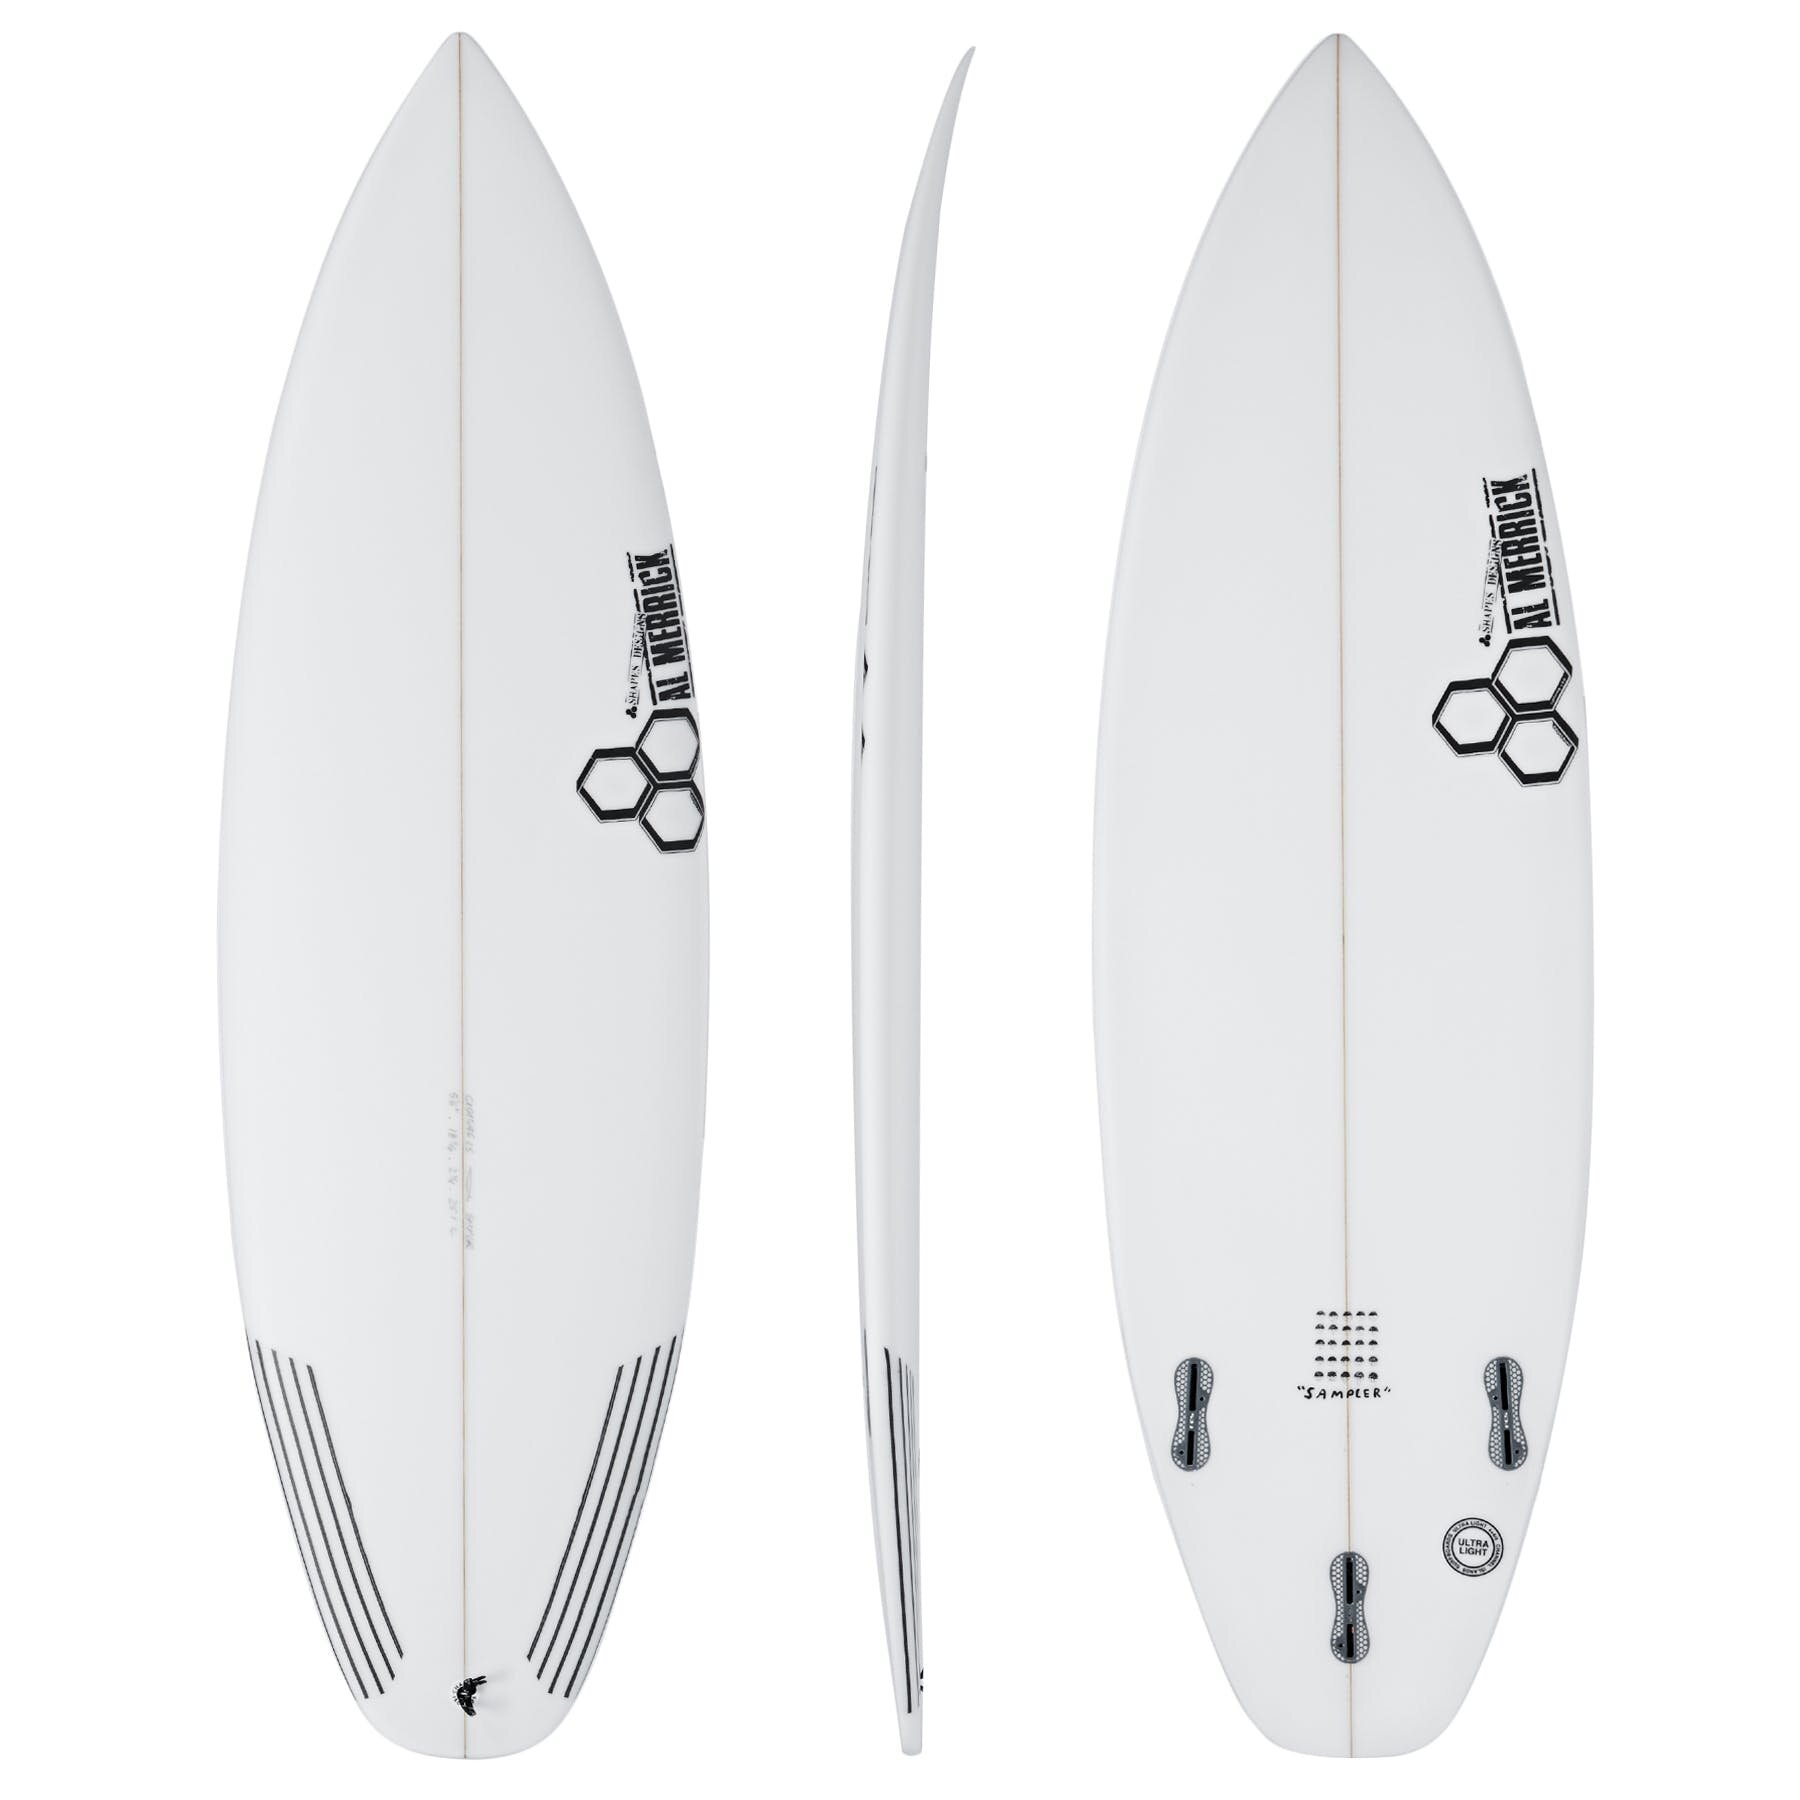 """Channel Islands """"Sampler"""" - RETAIL PRICE: $669YOU PAY: $499The C.I. Sampler is currently available in the following sizes and fin setups.5'6 x 18 3/4 x 2 1/4 25.1L FCS 25'8 x 19 1/4 x 2 3/8 27.9L FCS 25'9 x 19 1/2 x 2 7/16 29.4L FCS 25'10 x 19 3/4 x 2 1/2 31.0L FCS 2"""